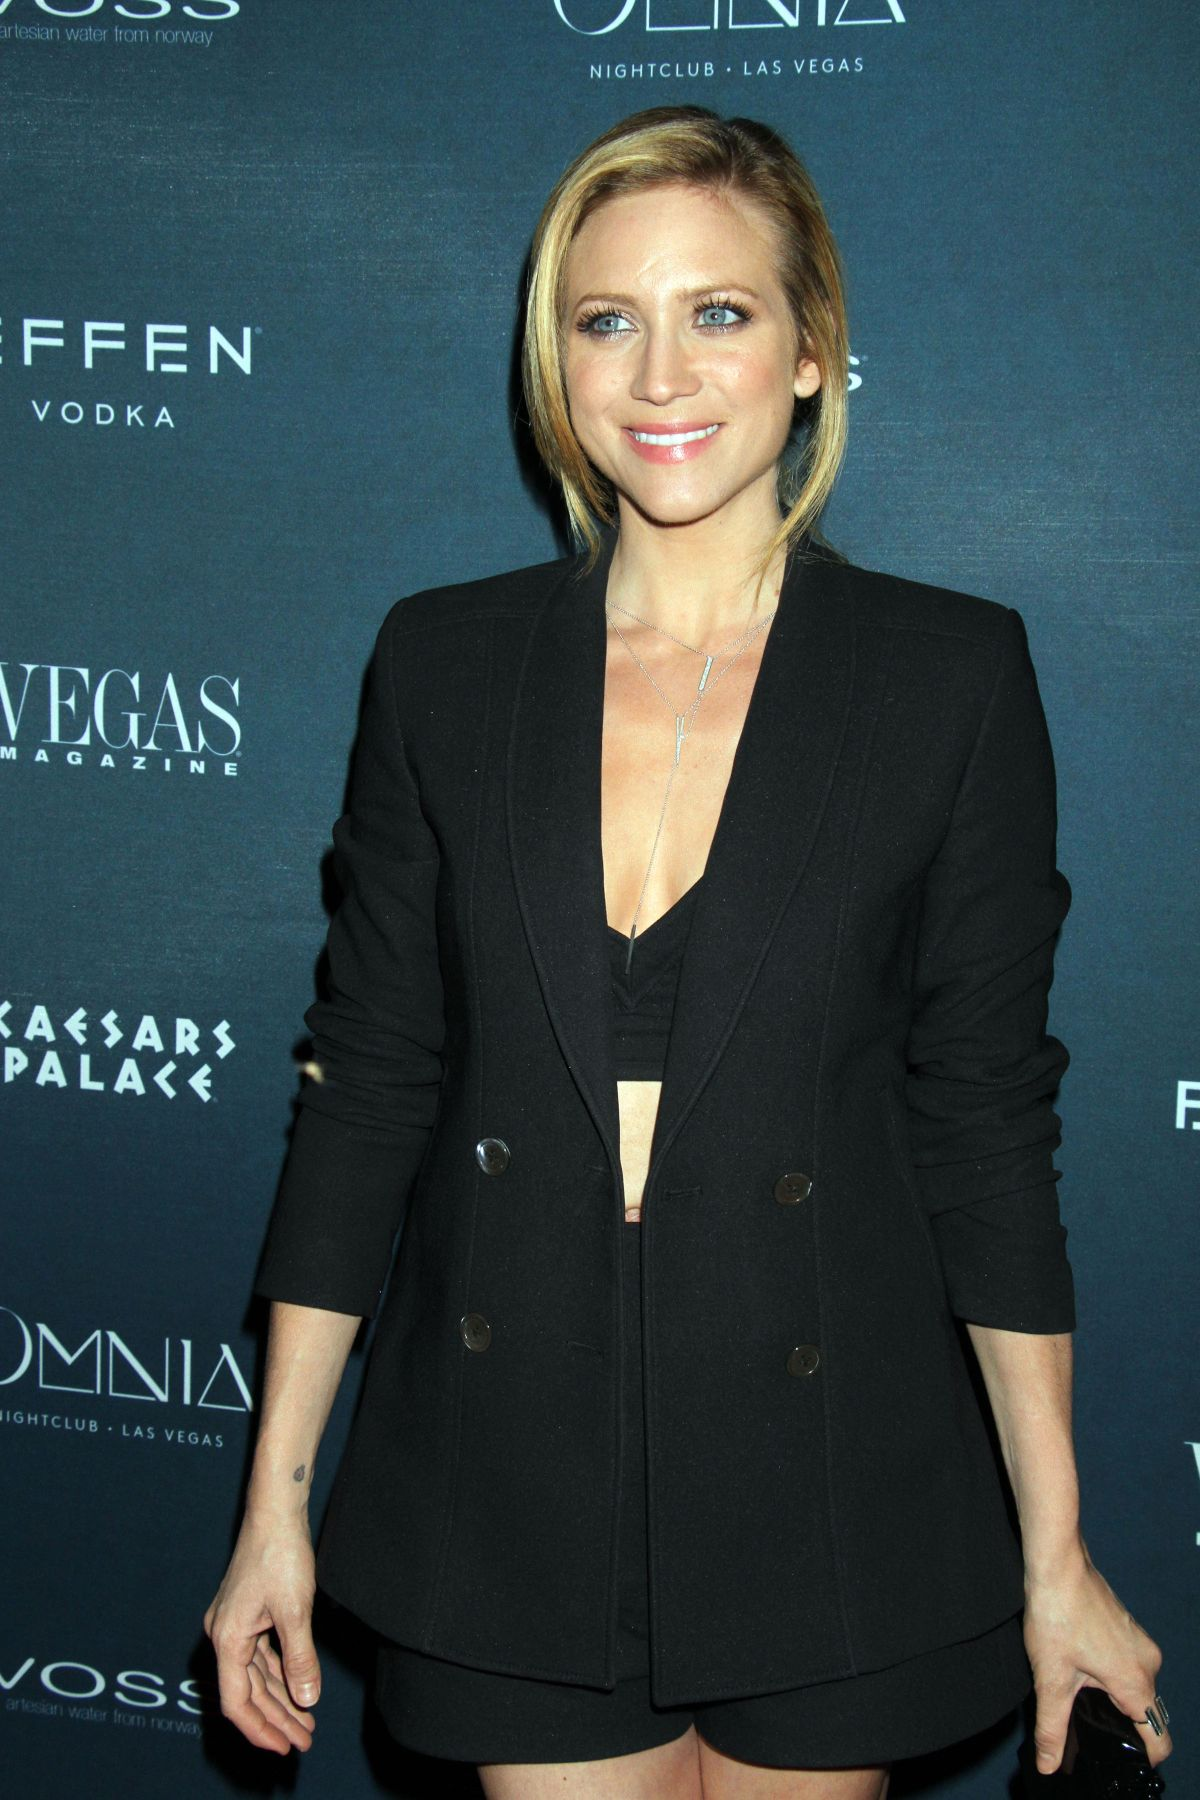 BRITTANY SNOW at Vegas Magazine